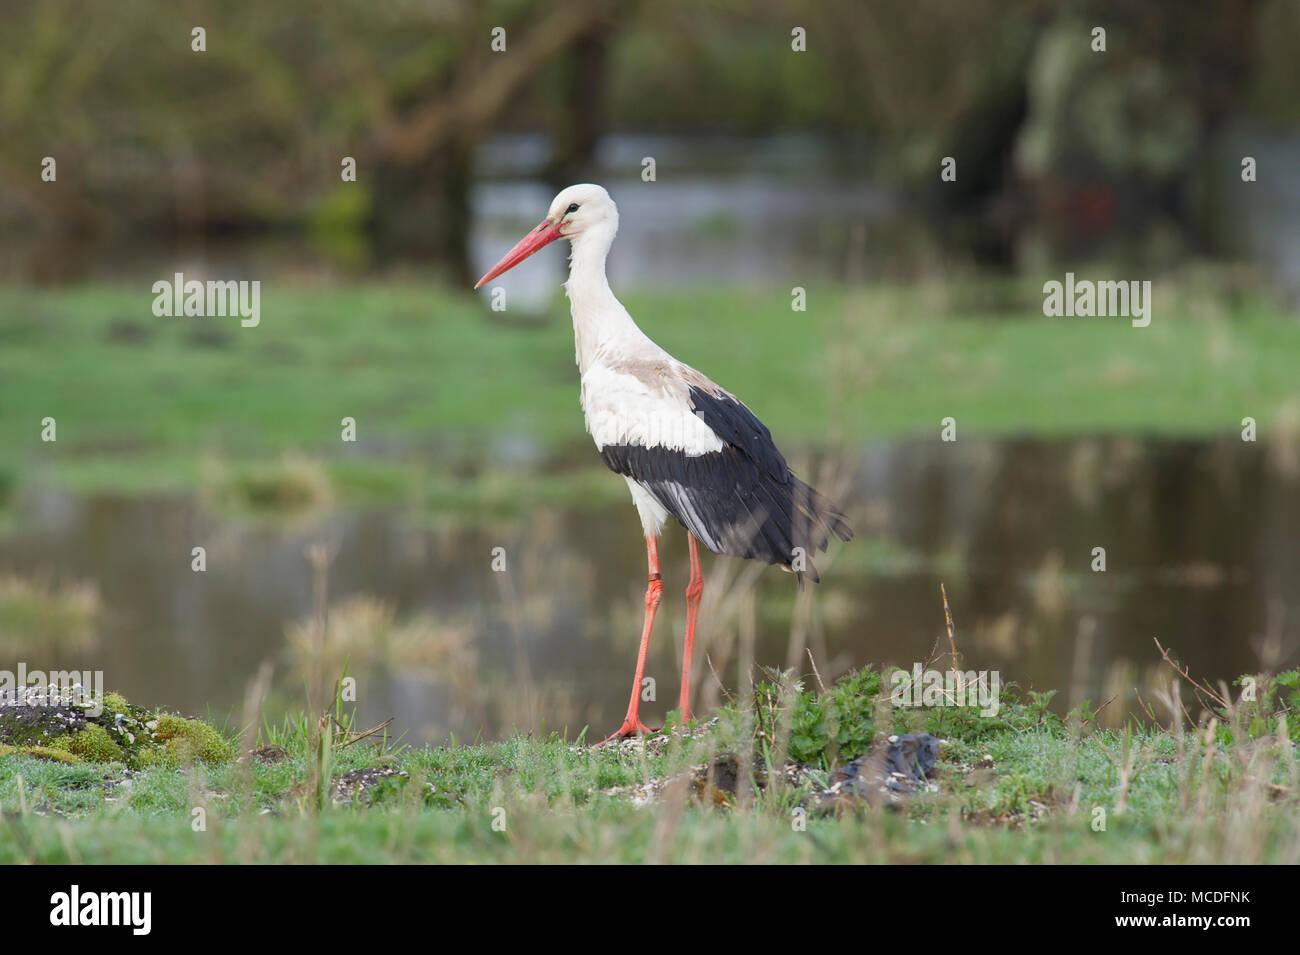 Wansford, East Yorkshire, UK. 16th April, 2018. A rare visitor to the UK, a White Stork (Ciconia ciconia) overlooking flooded fields along the Wansford canal in East Yorkshire. Credit: Josh Harrison/Alamy Live News. - Stock Image